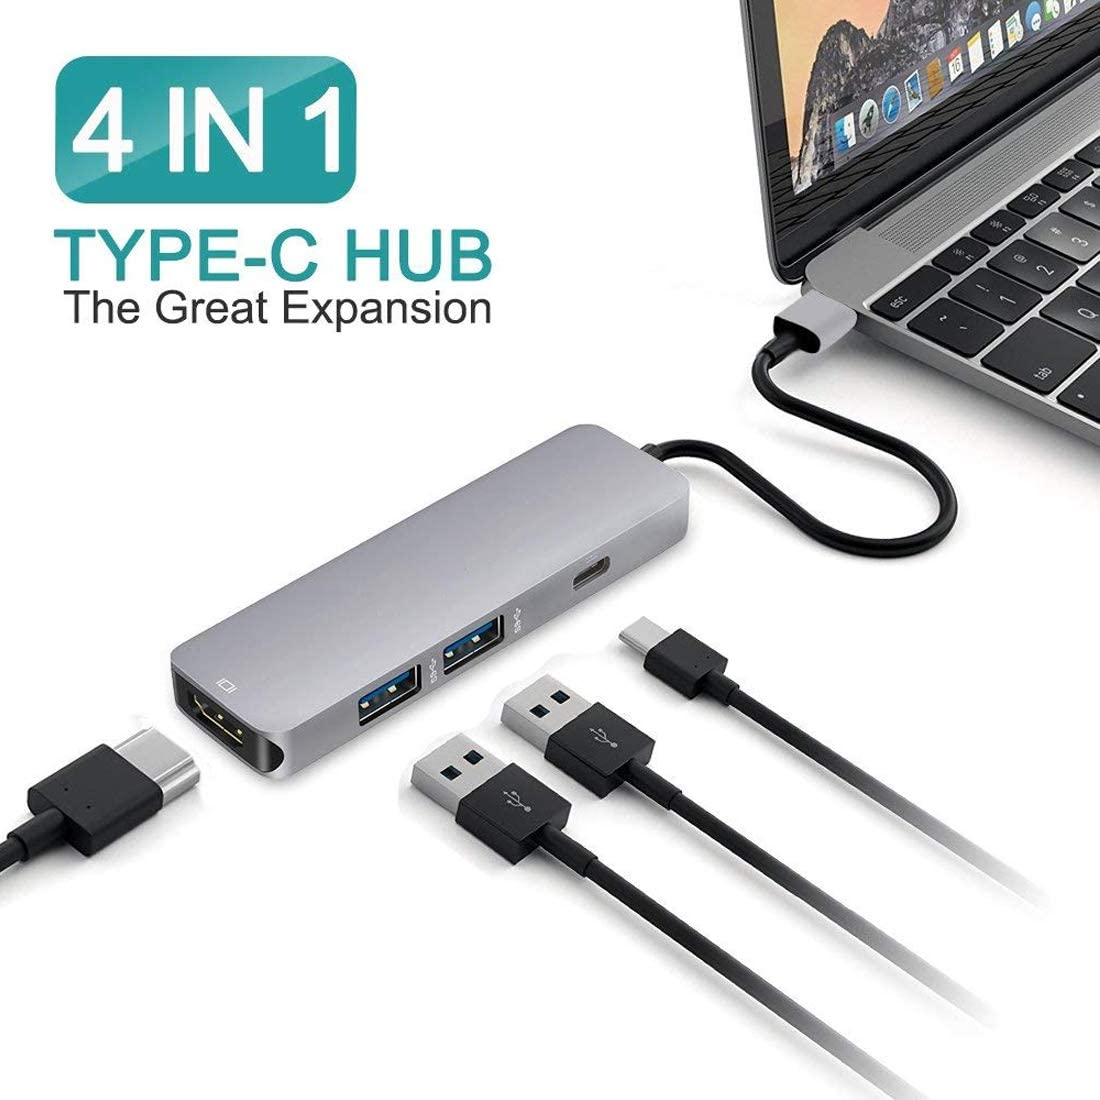 USB C Hub, 8 in 1 Type C Adapter with 4K HDMI, LAN Ethernet, VGA, 2 USB 3, PD Charging Ports, SD/TF, Micro SD Card Reader Compatible with MacBook Pro/Air, Laptop, Smartphones and More